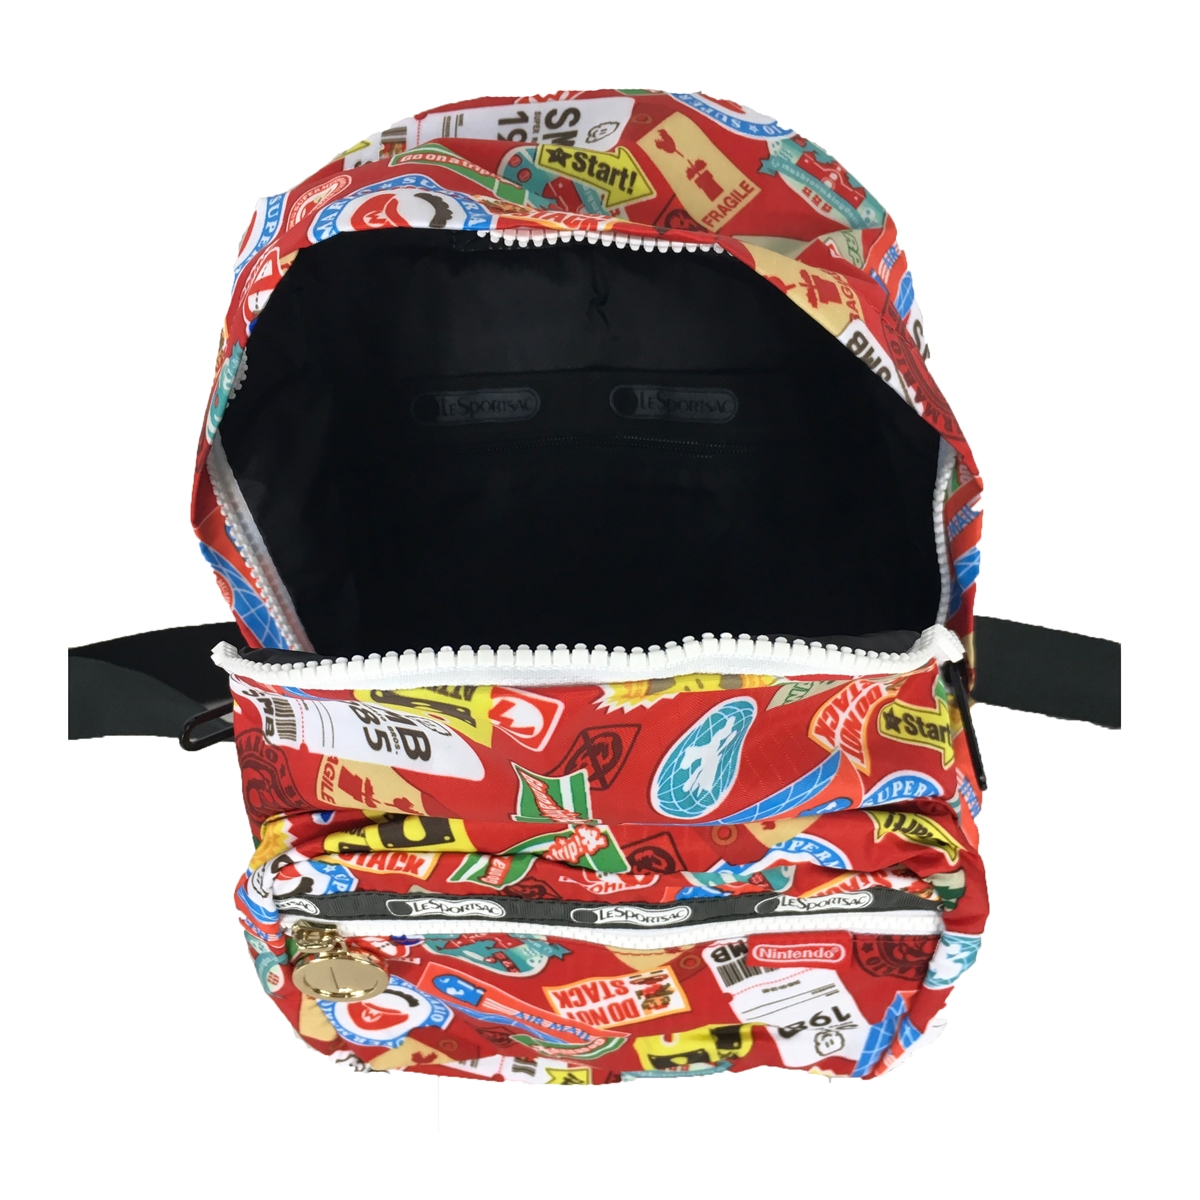 05a860f9caf7 LeSportsac x Nintendo Cruising Small Backpack